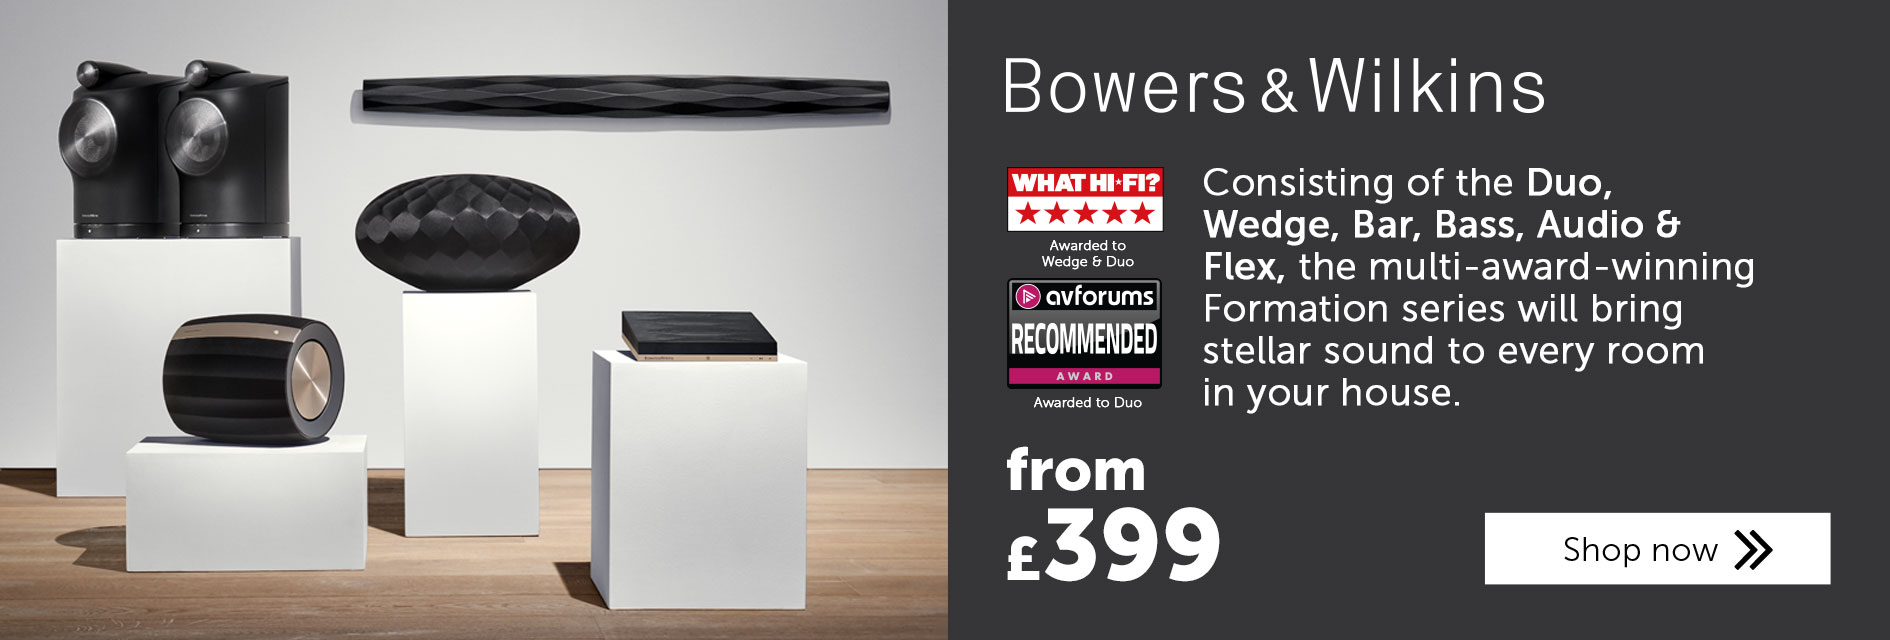 Bowers & Wilkins Formation series